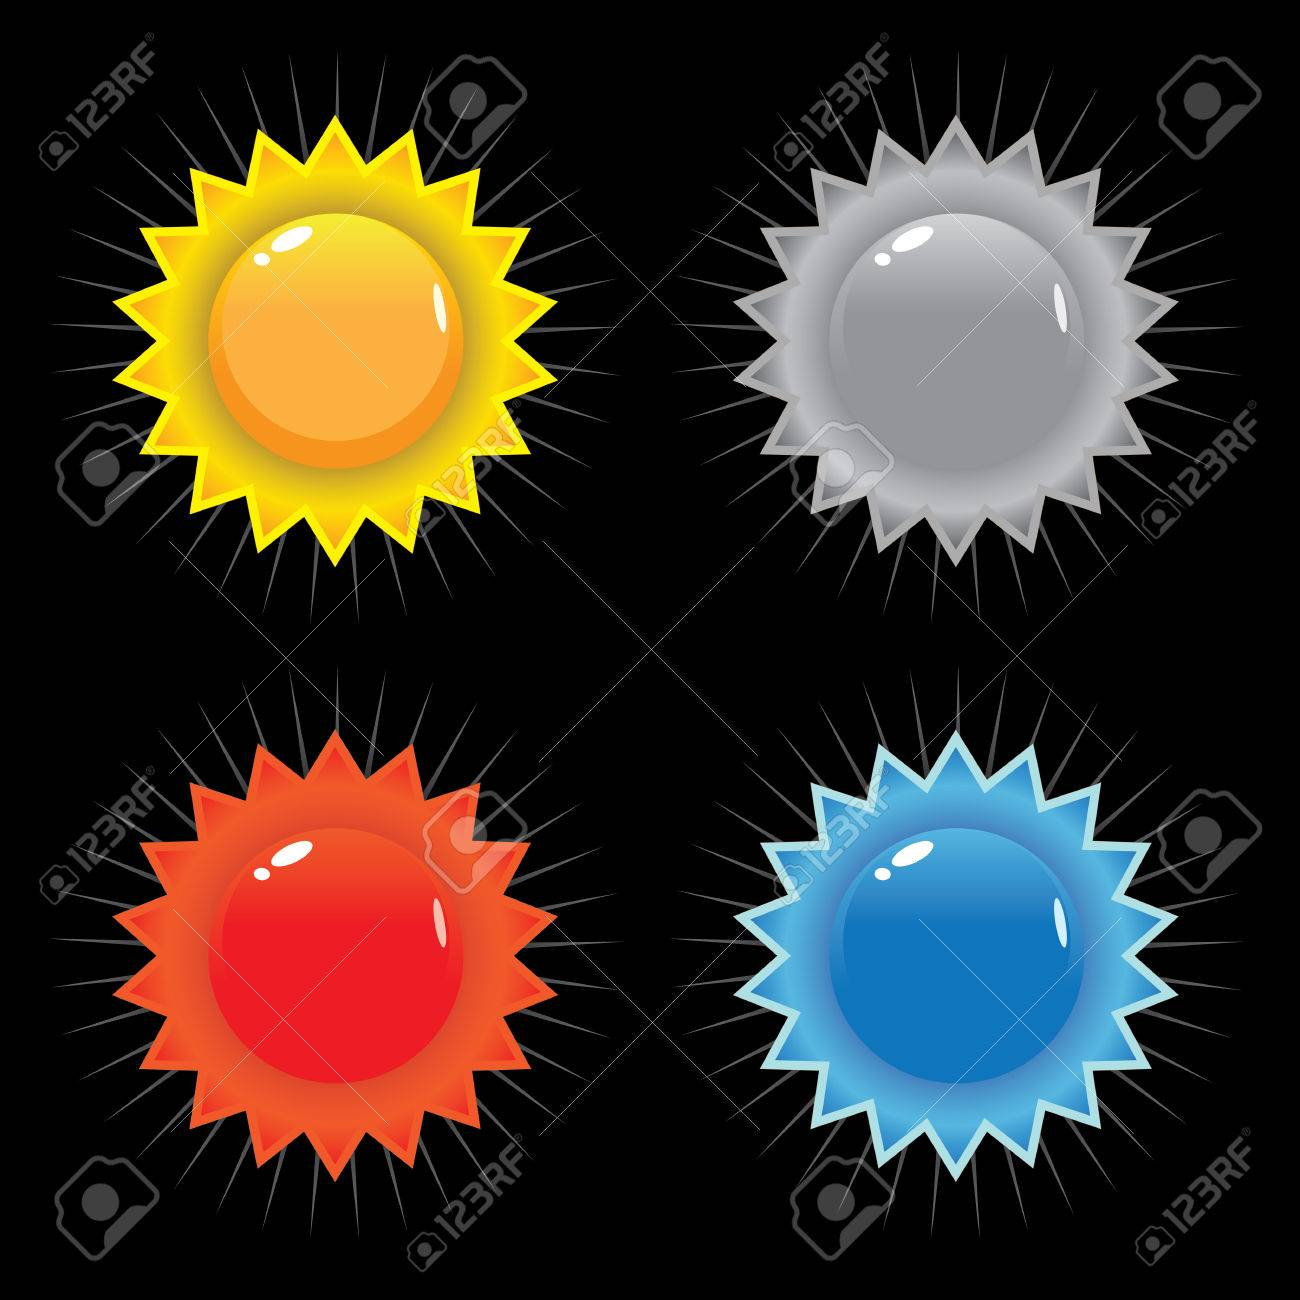 A set of vector seals or icons including primary colors red blue and yellow. Stock Vector - 6370280